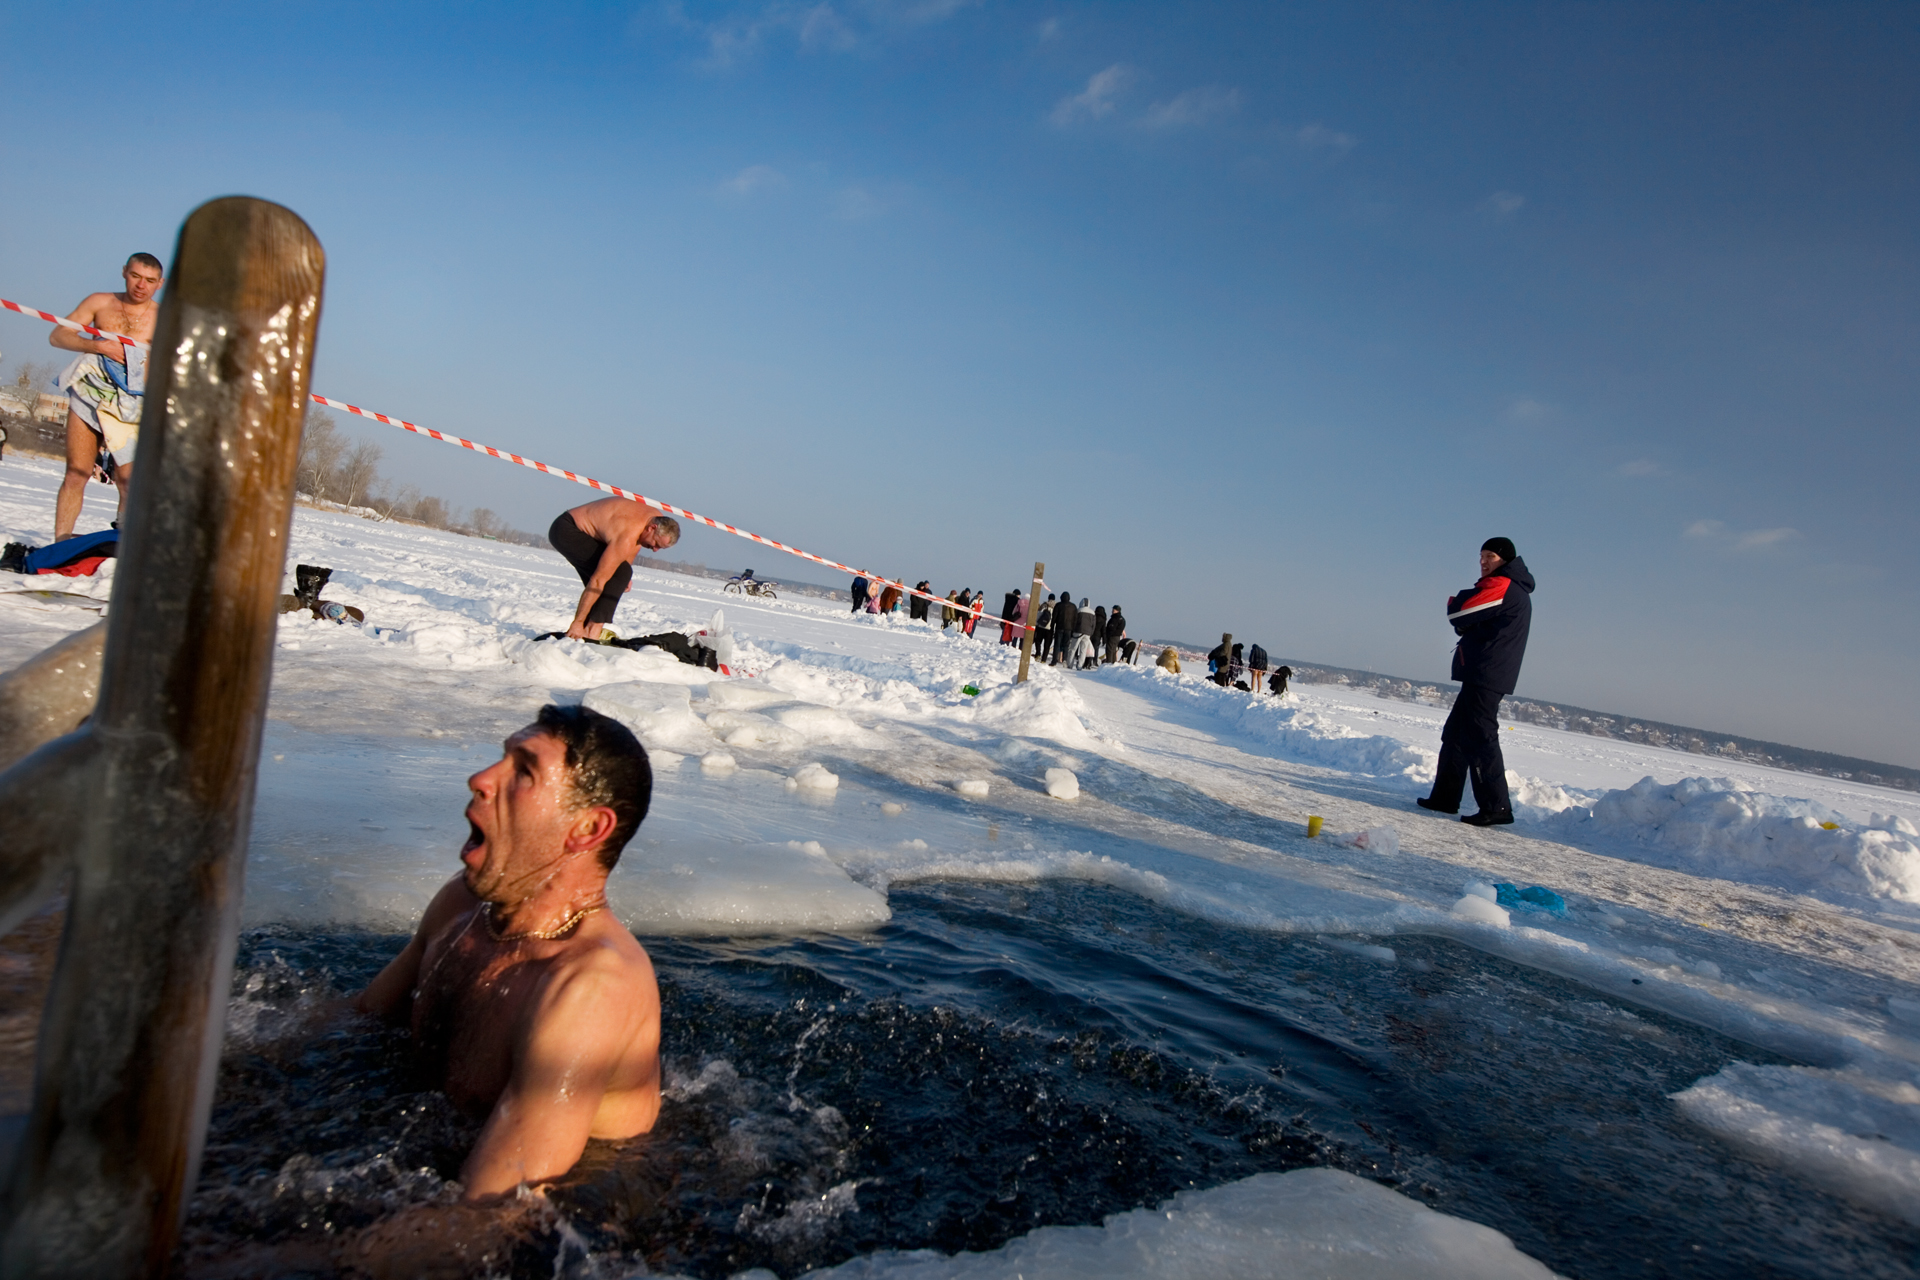 Pious in the extreme, a parishioner gasps after plunging into a cross-shaped hole cut into Lake Shartash at Epiphany.  Yekaterinburg, Russia